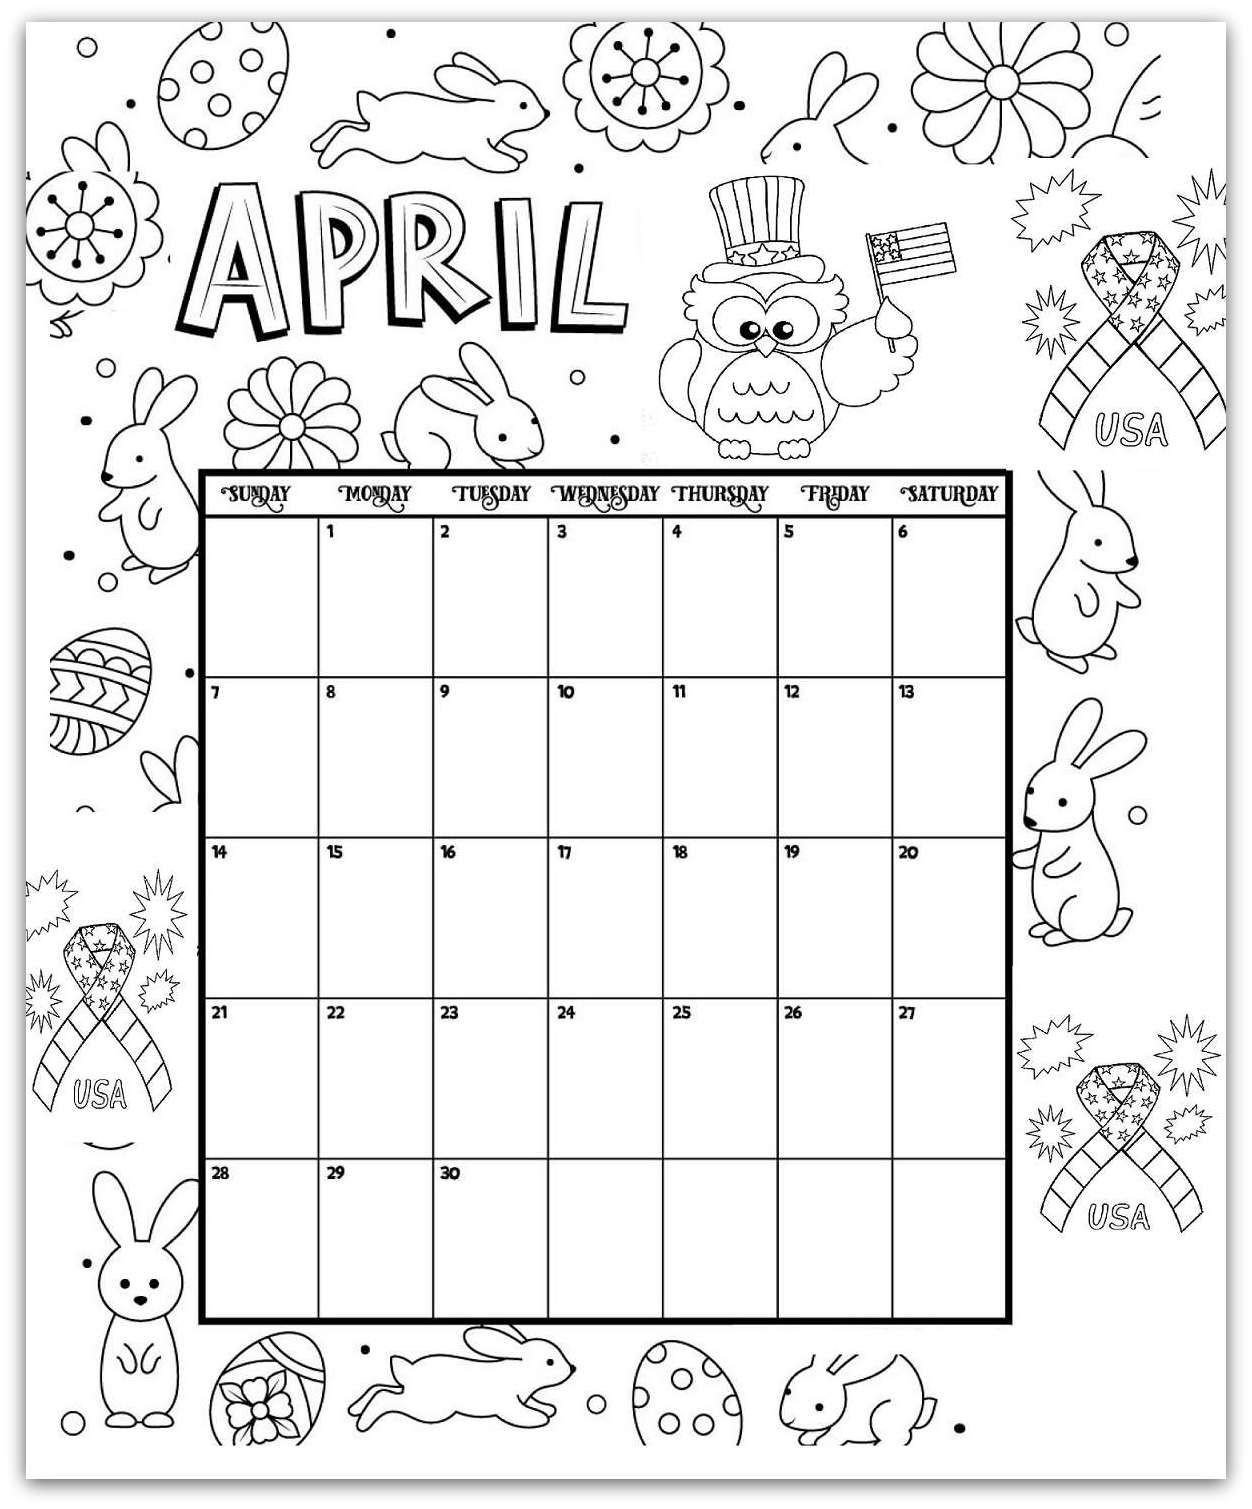 Calendar Worksheet for Kindergarten 2019 Coloring Pages Printable Monthly Calendars for Kids